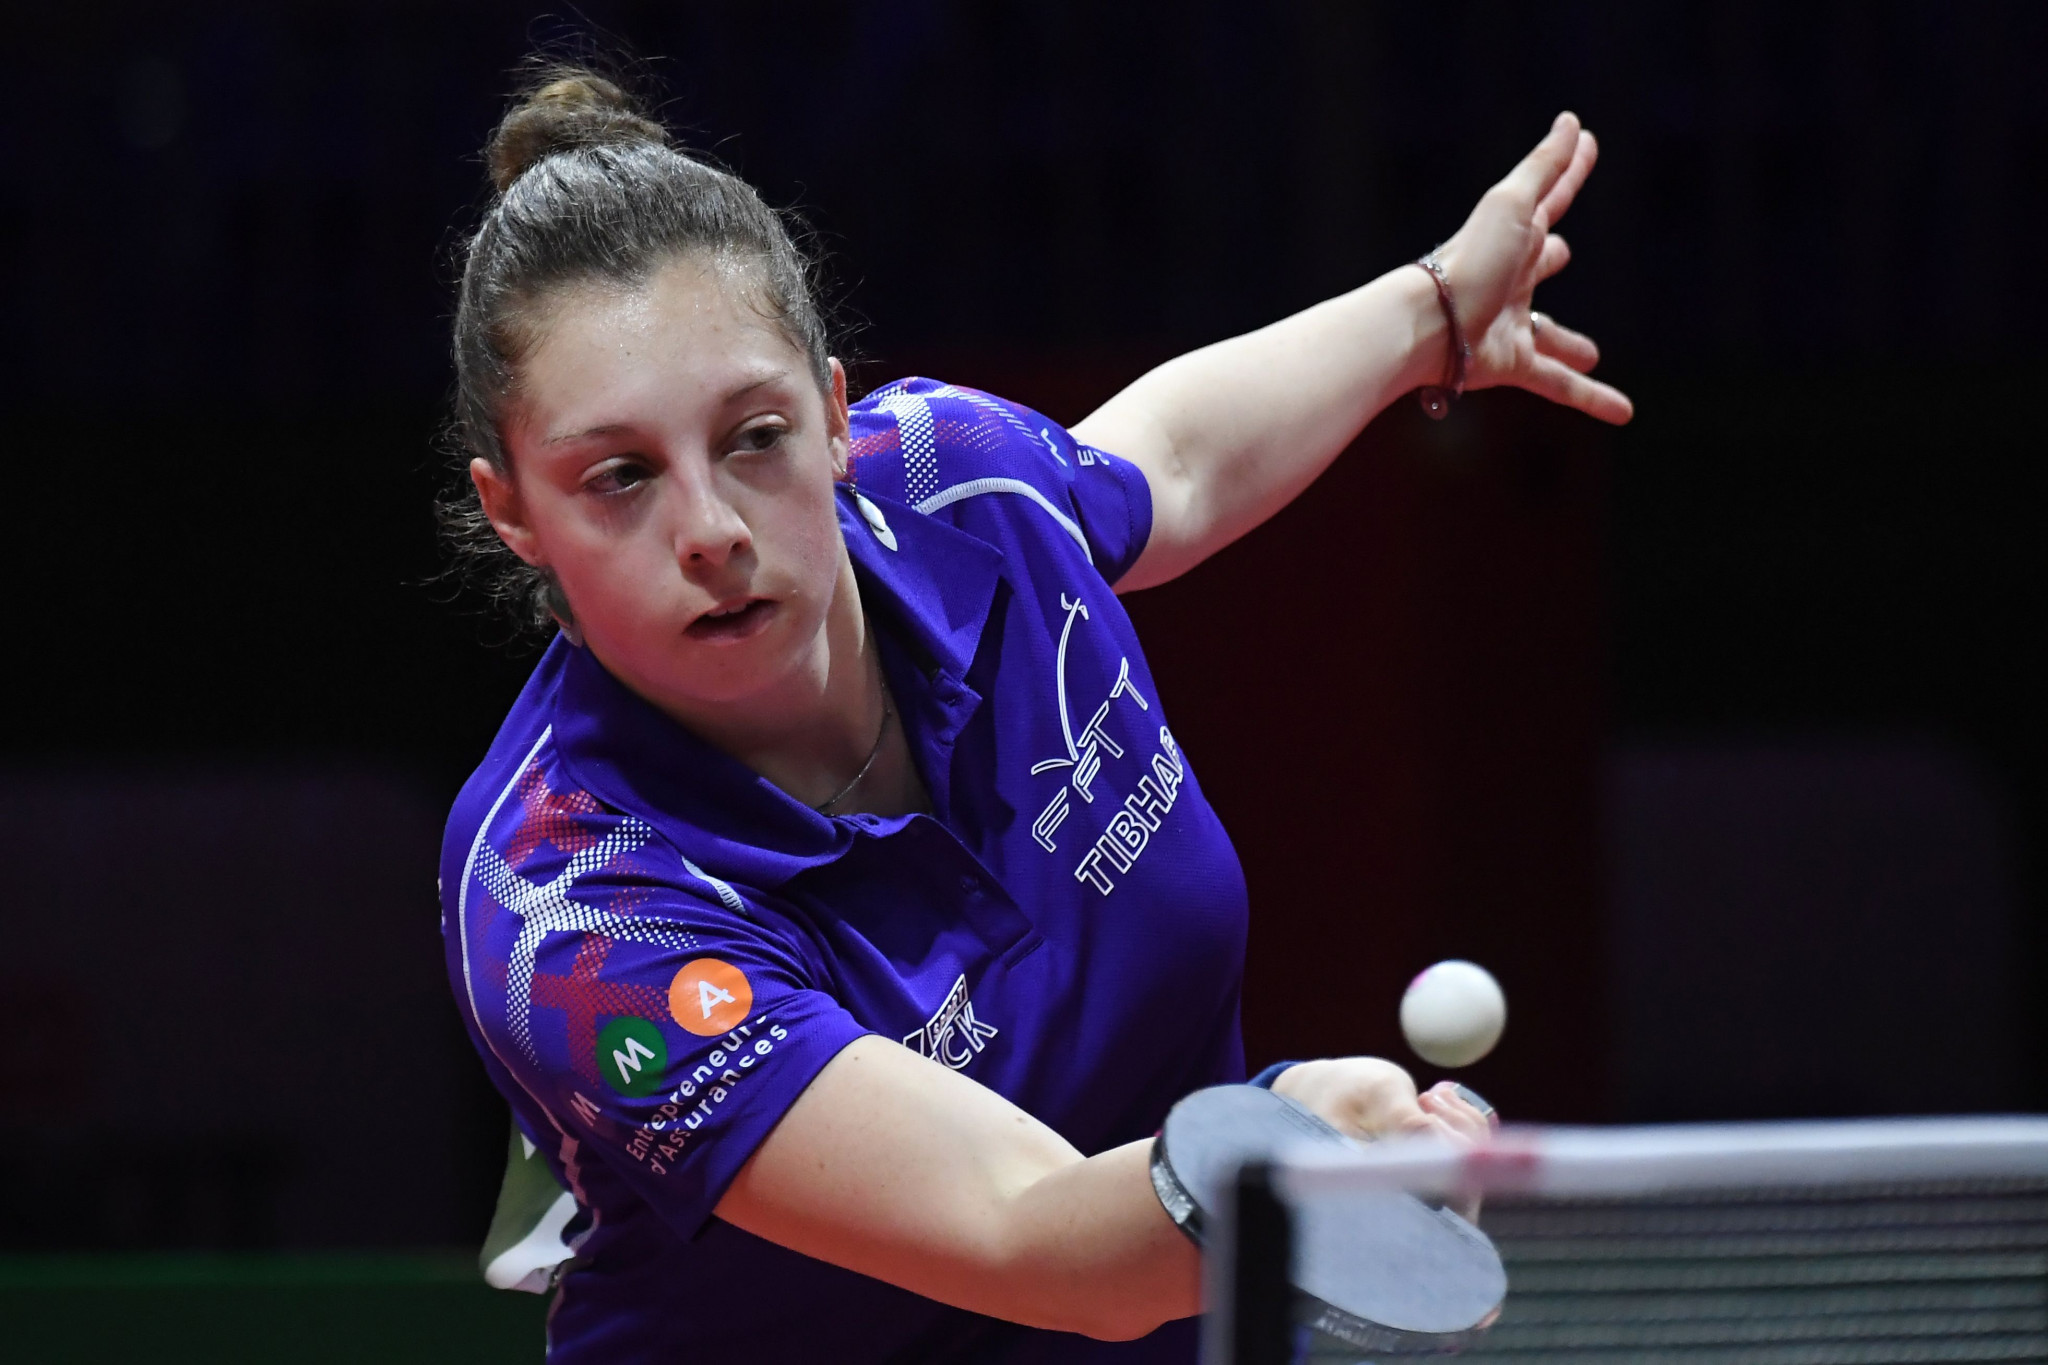 Qualifying rounds end prior to WTT Star Contender Doha first round